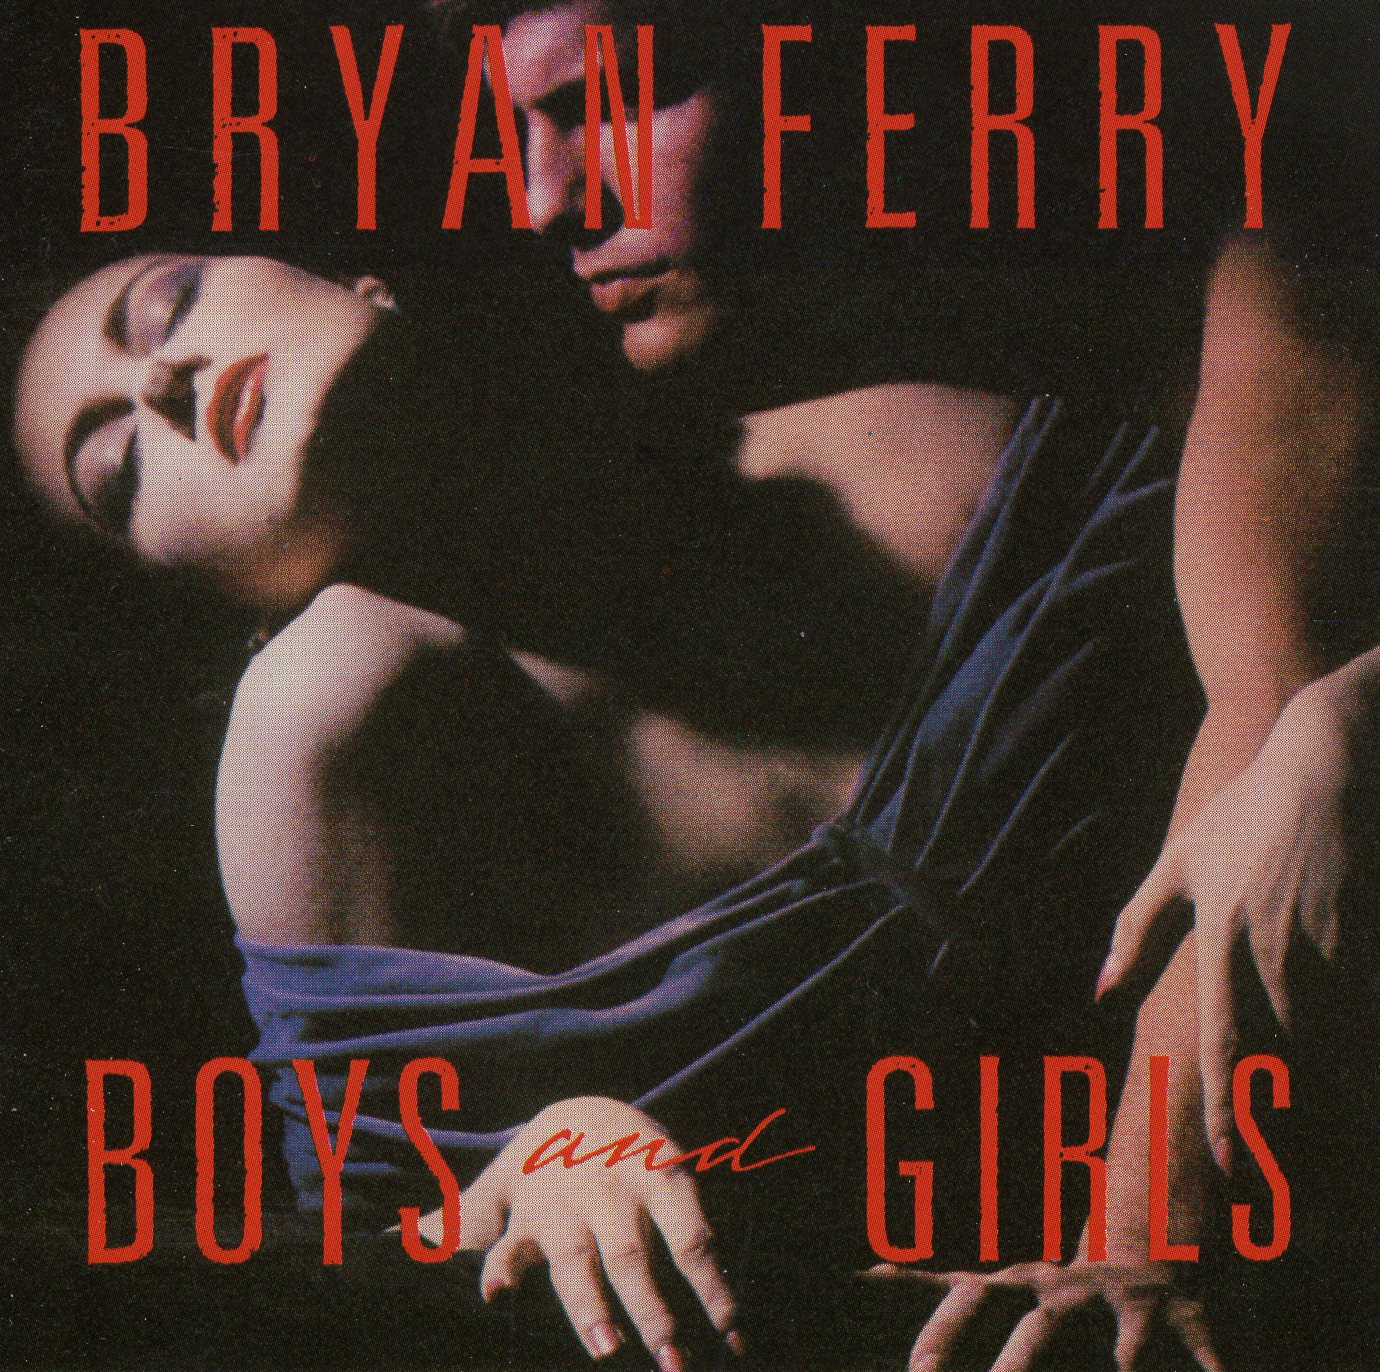 """Boys and Girls"" Bryan Ferry"